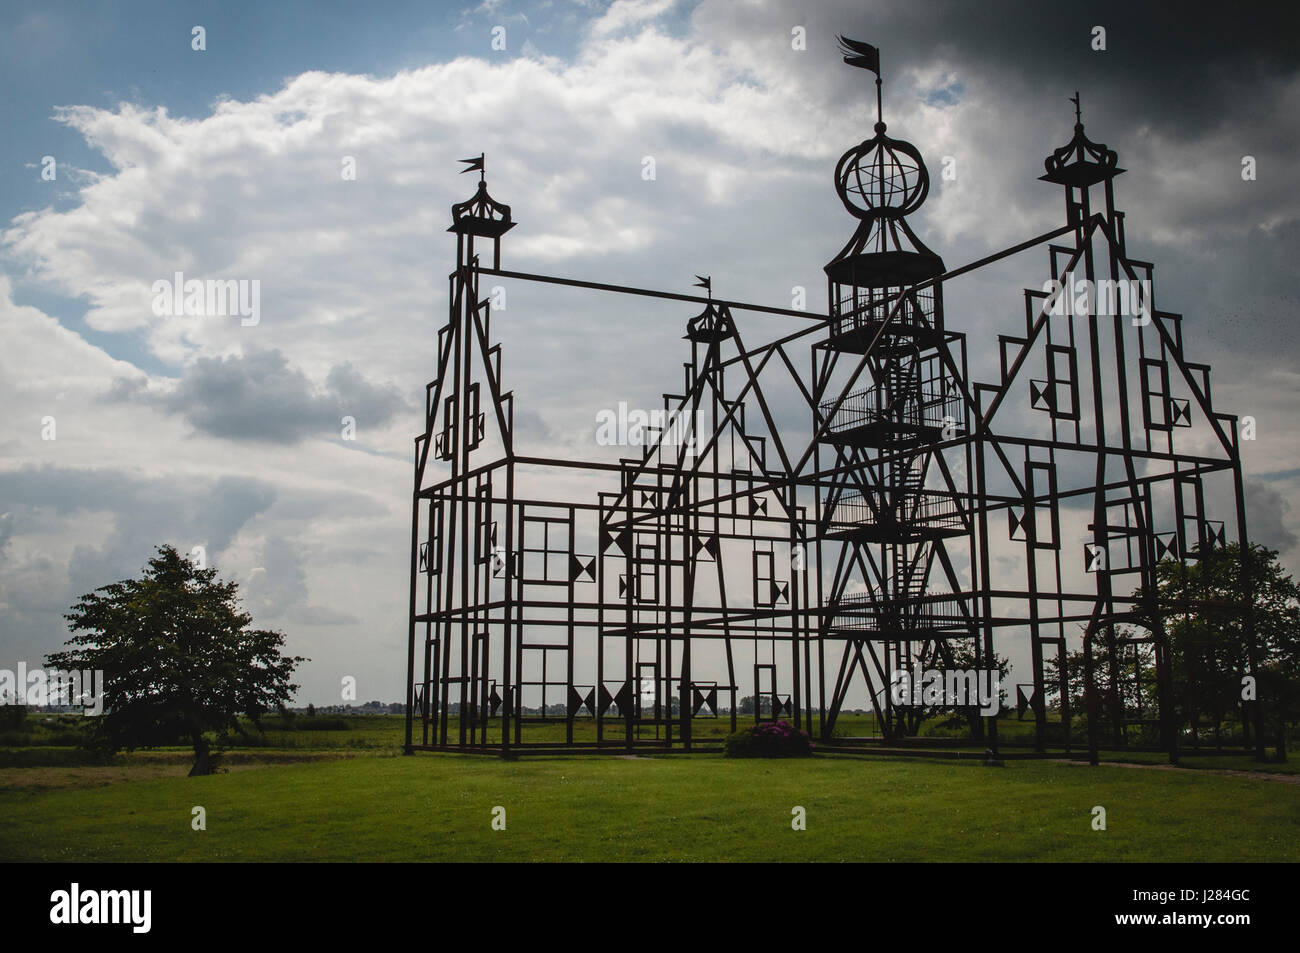 Silhouette built structure on grassy field against cloudy sky - Stock Image